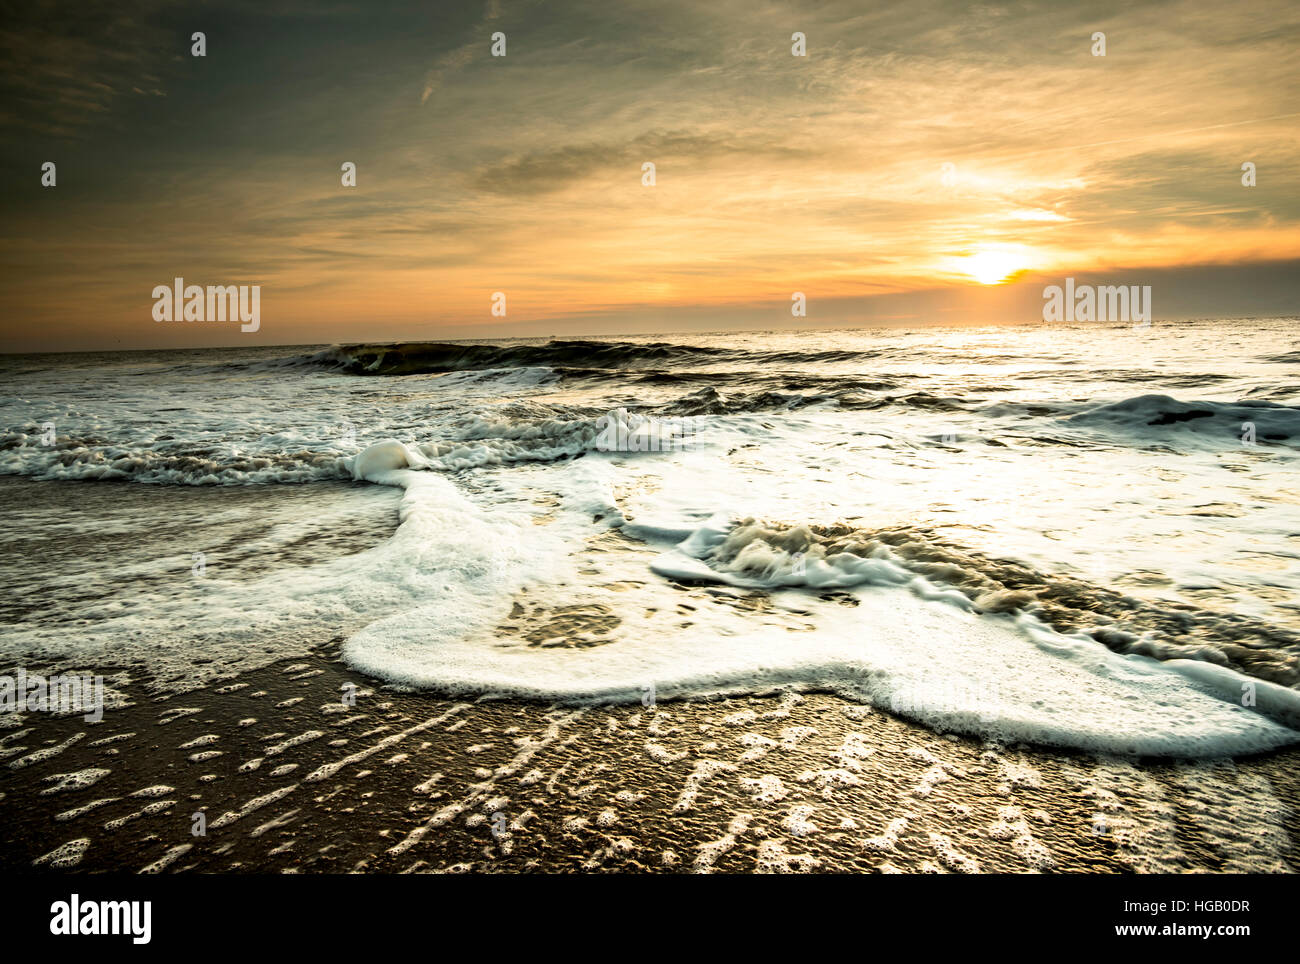 Tyee Beach, Savannah, Georgia at Sunrise.  Foam, Waves, Sand with a high Overcast Sky in Warm Brown Tones - Stock Image